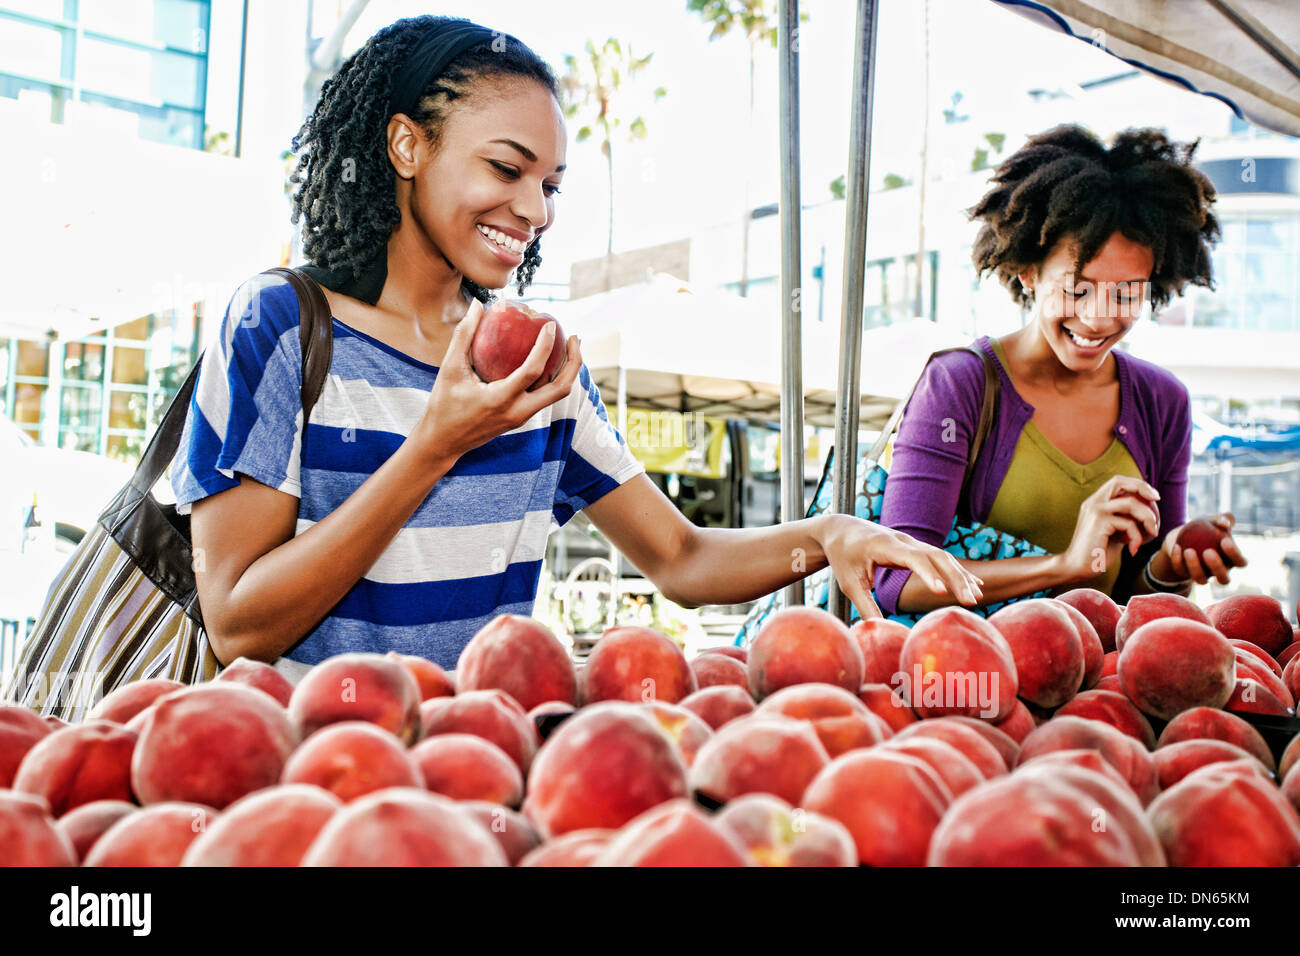 Women shopping together at fruit stand Stock Photo